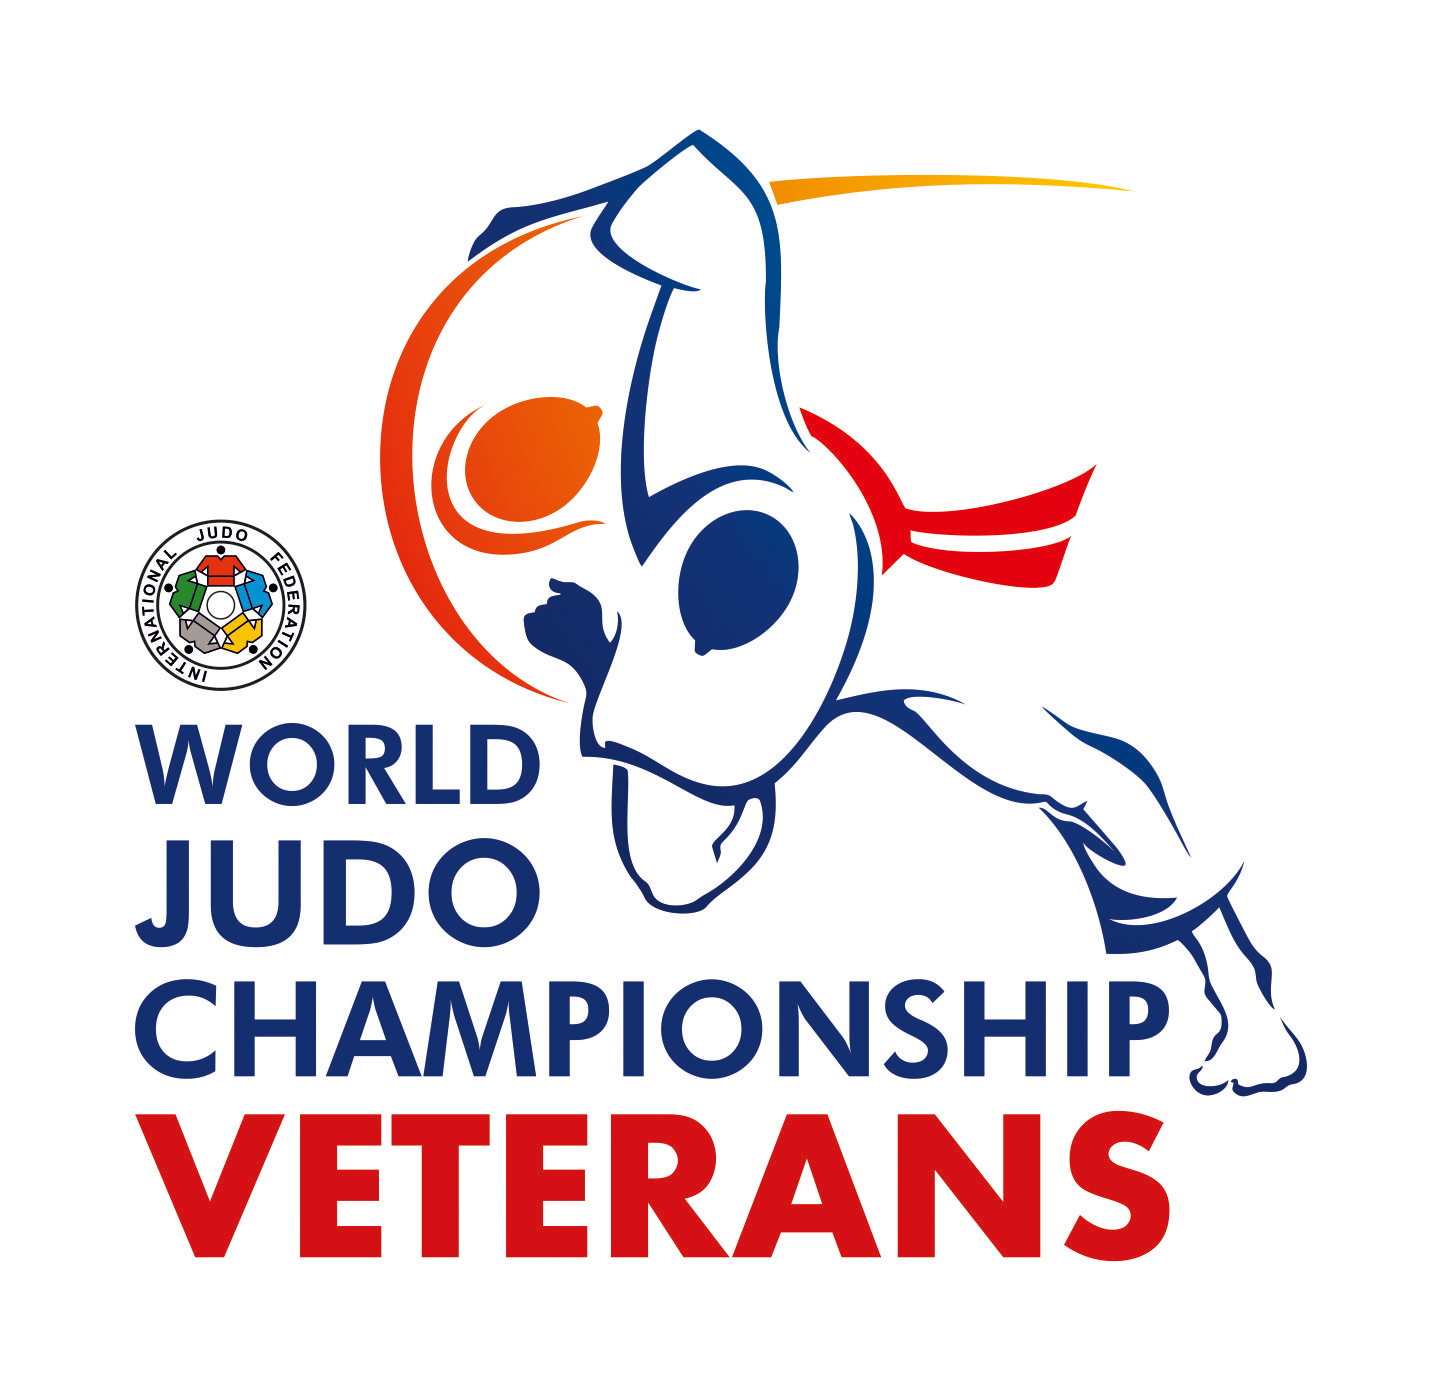 logo-veteranos-world-championship